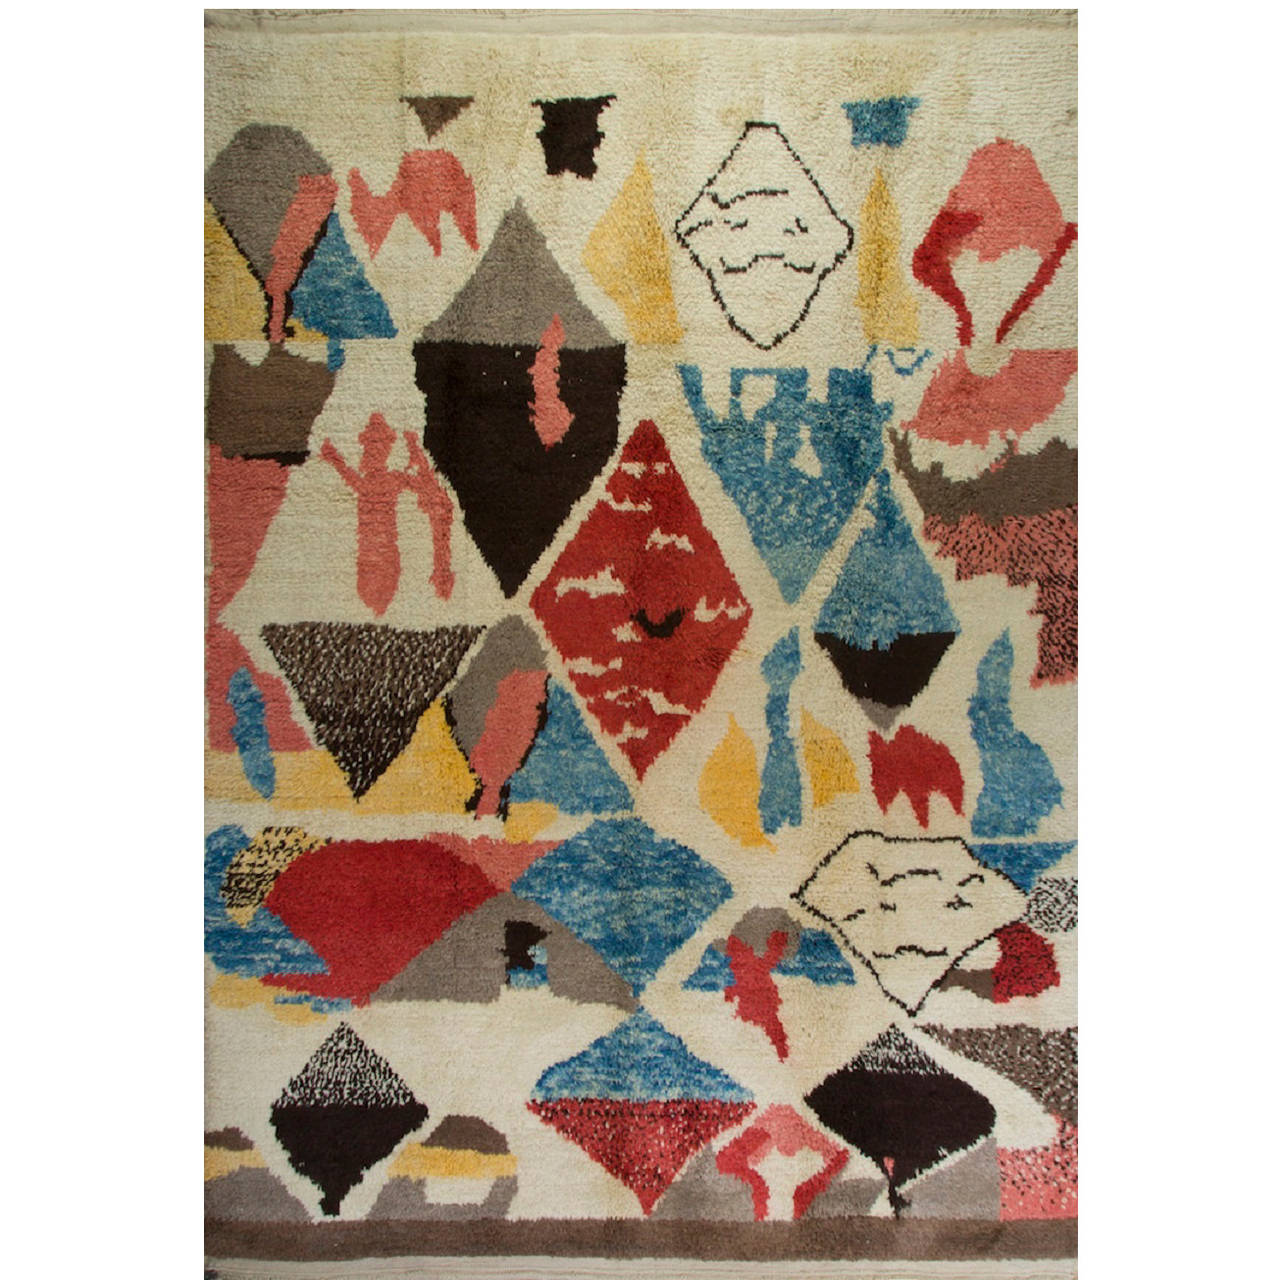 Colorful contemporary moroccan wool rug for sale at 1stdibs for Colorful rugs for sale